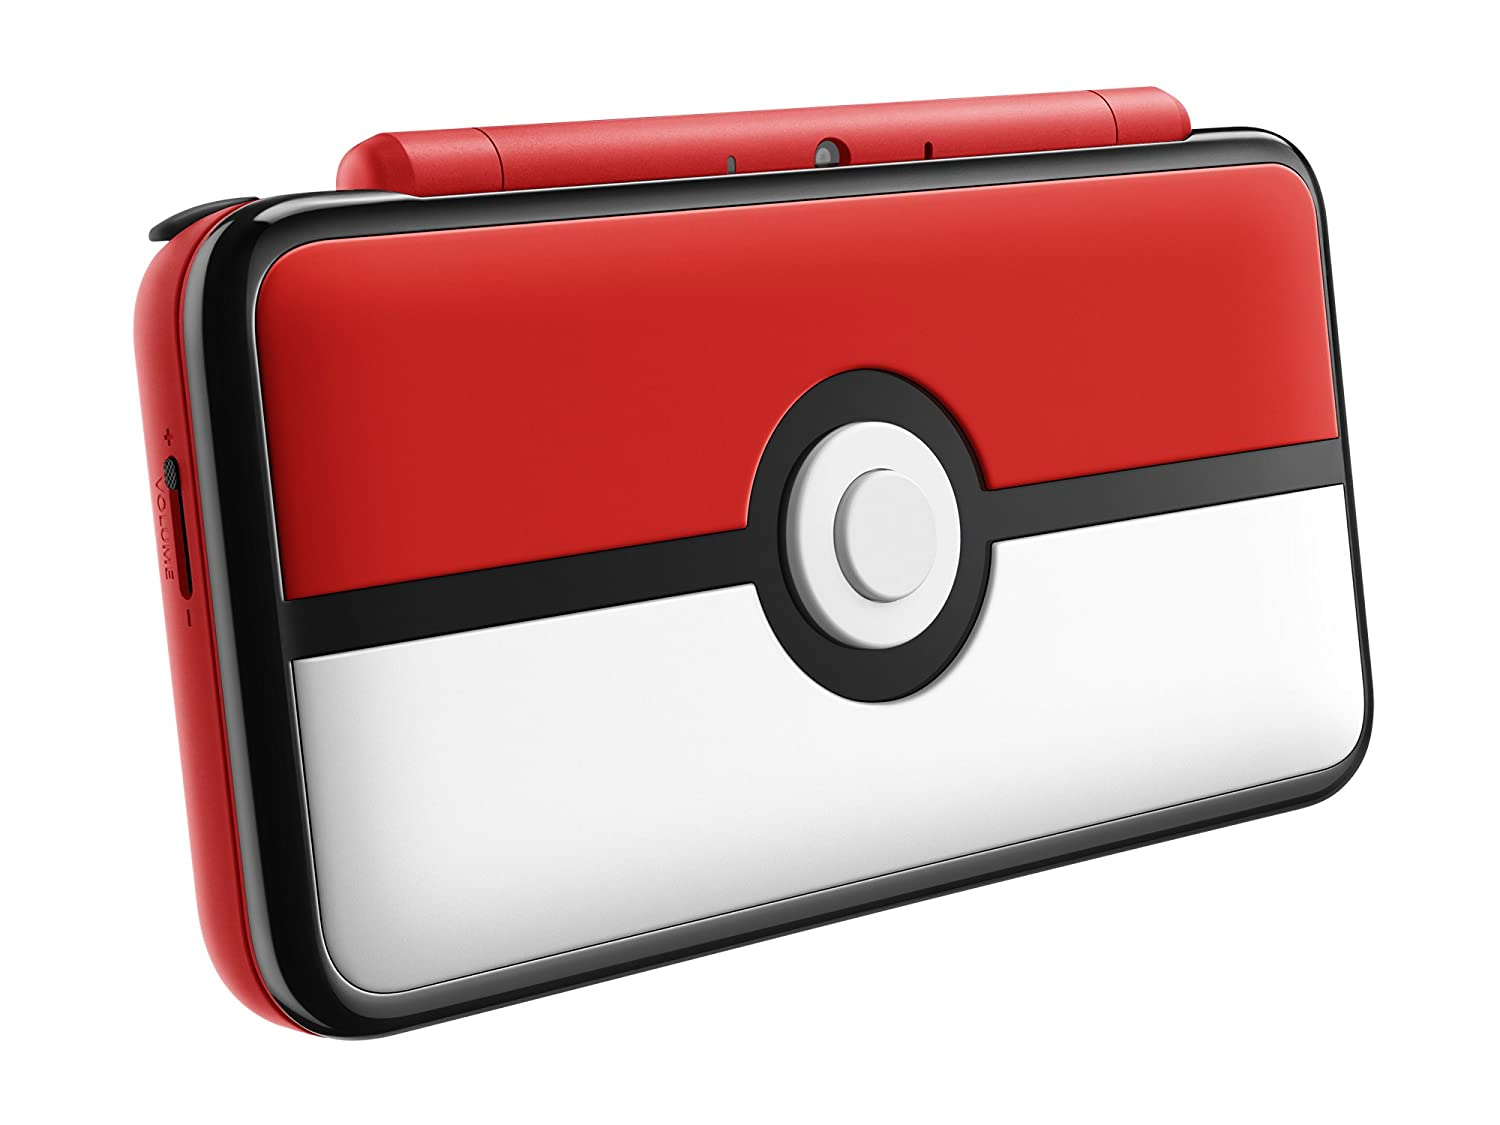 Nintendo New 2DS XL - Poke Ball Edition Imported USA. B075MZT541